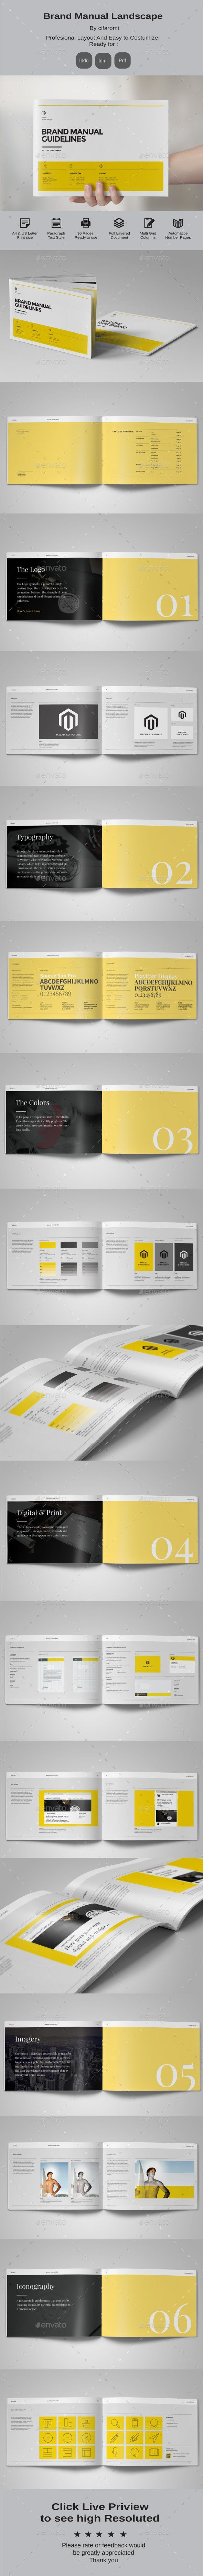 Brand Manual Landscape  Brand Manual Brochure Template And Brochures